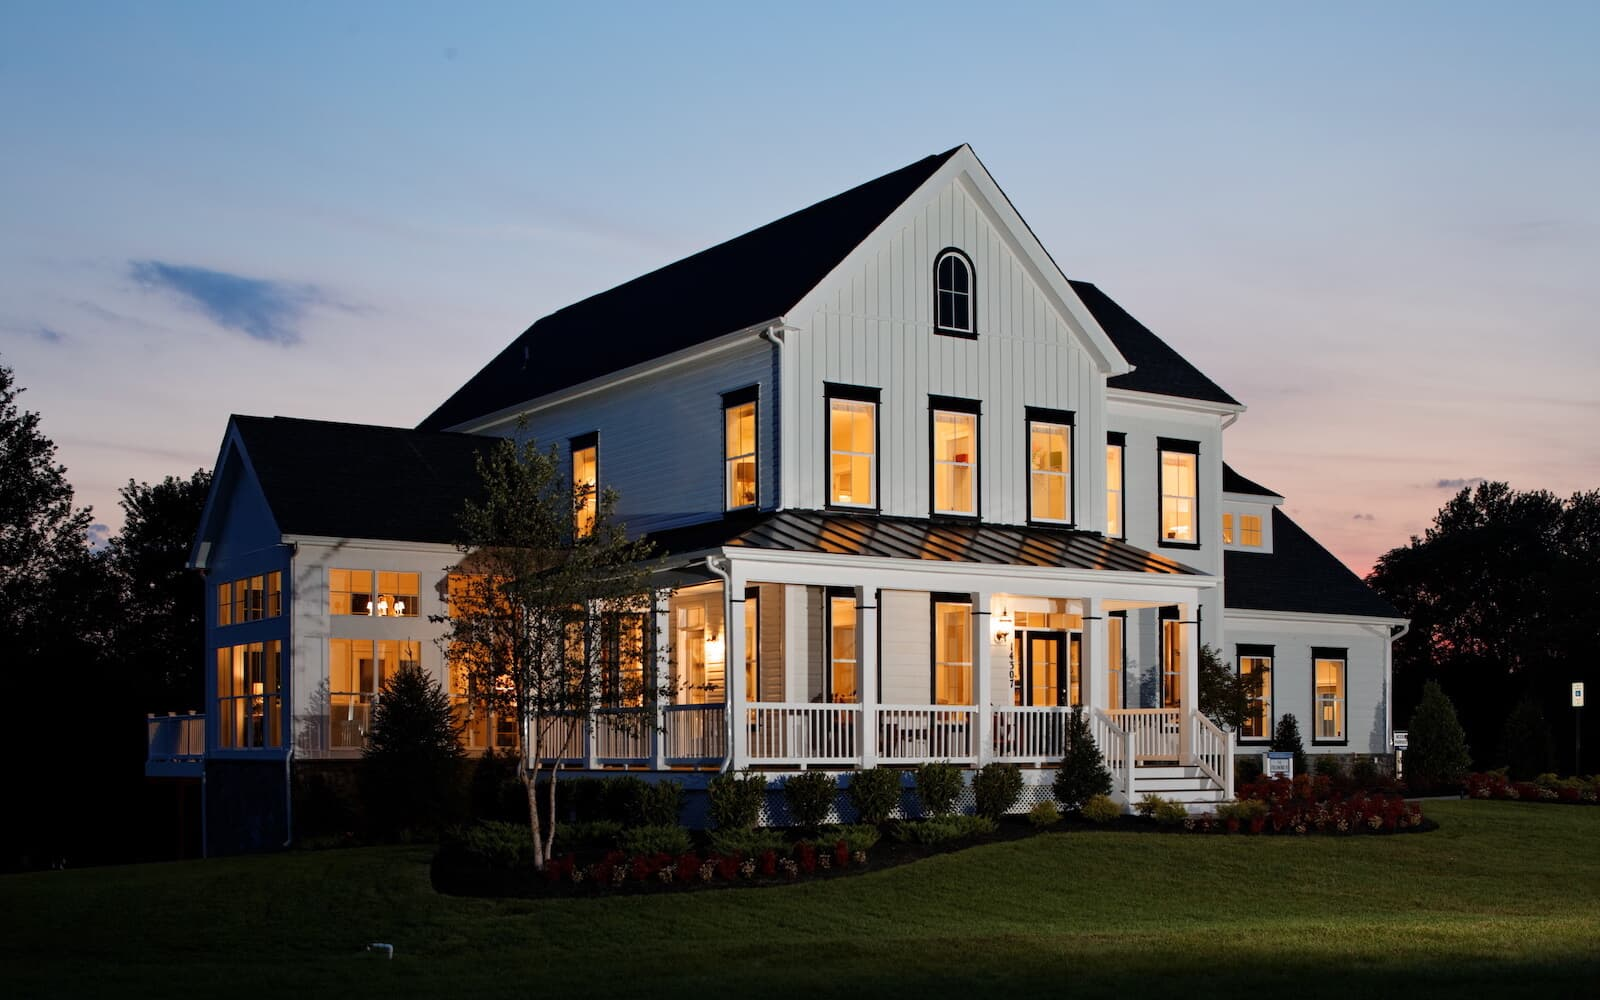 FillmoreII-exterior-single-family-home-leesburg-va-waterford-manor-brookfield-residential